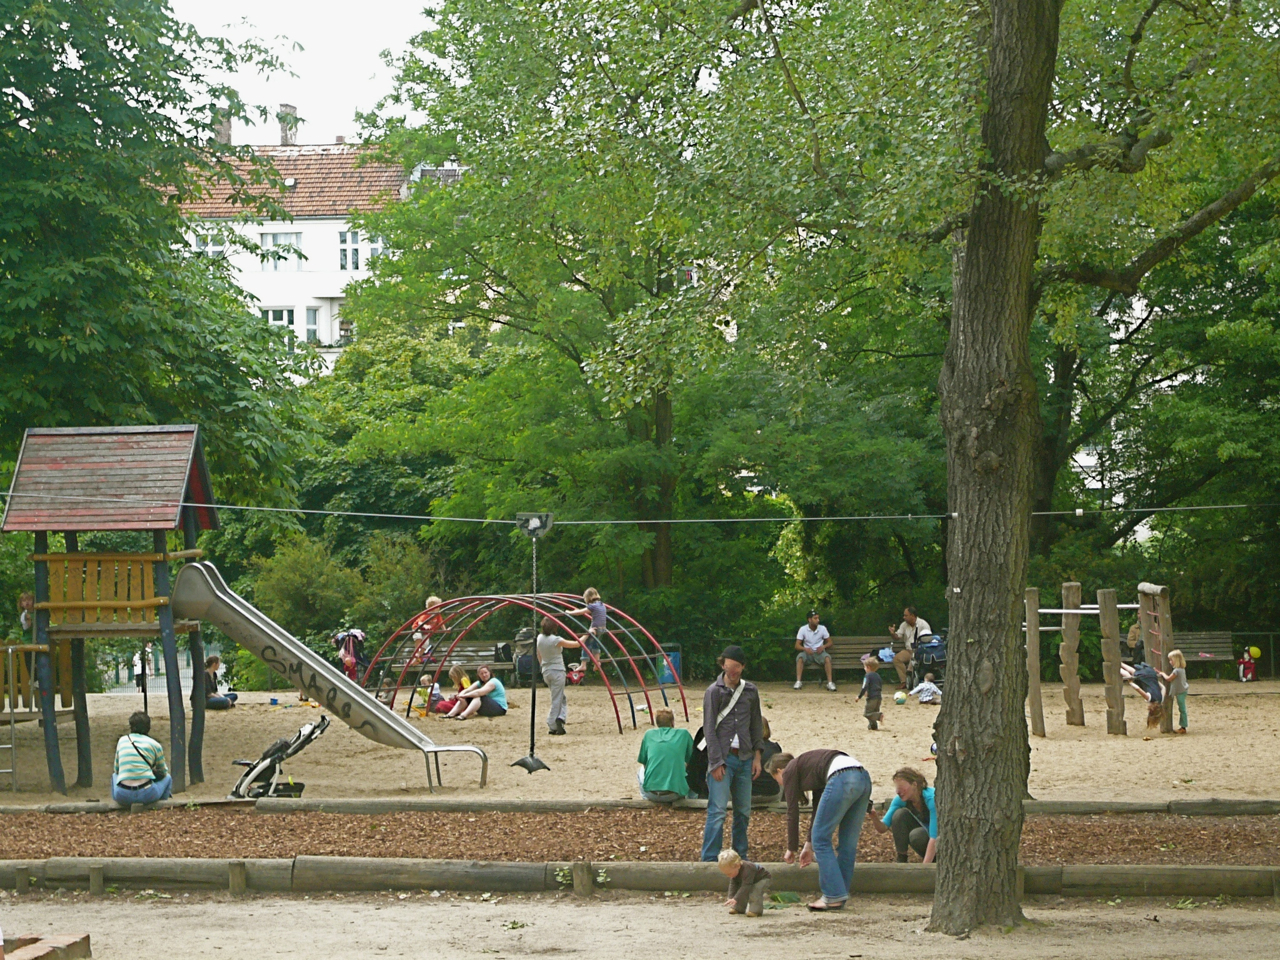 ausflugstipp mit kindern viktoriapark in berlin kreuzberg ytti. Black Bedroom Furniture Sets. Home Design Ideas